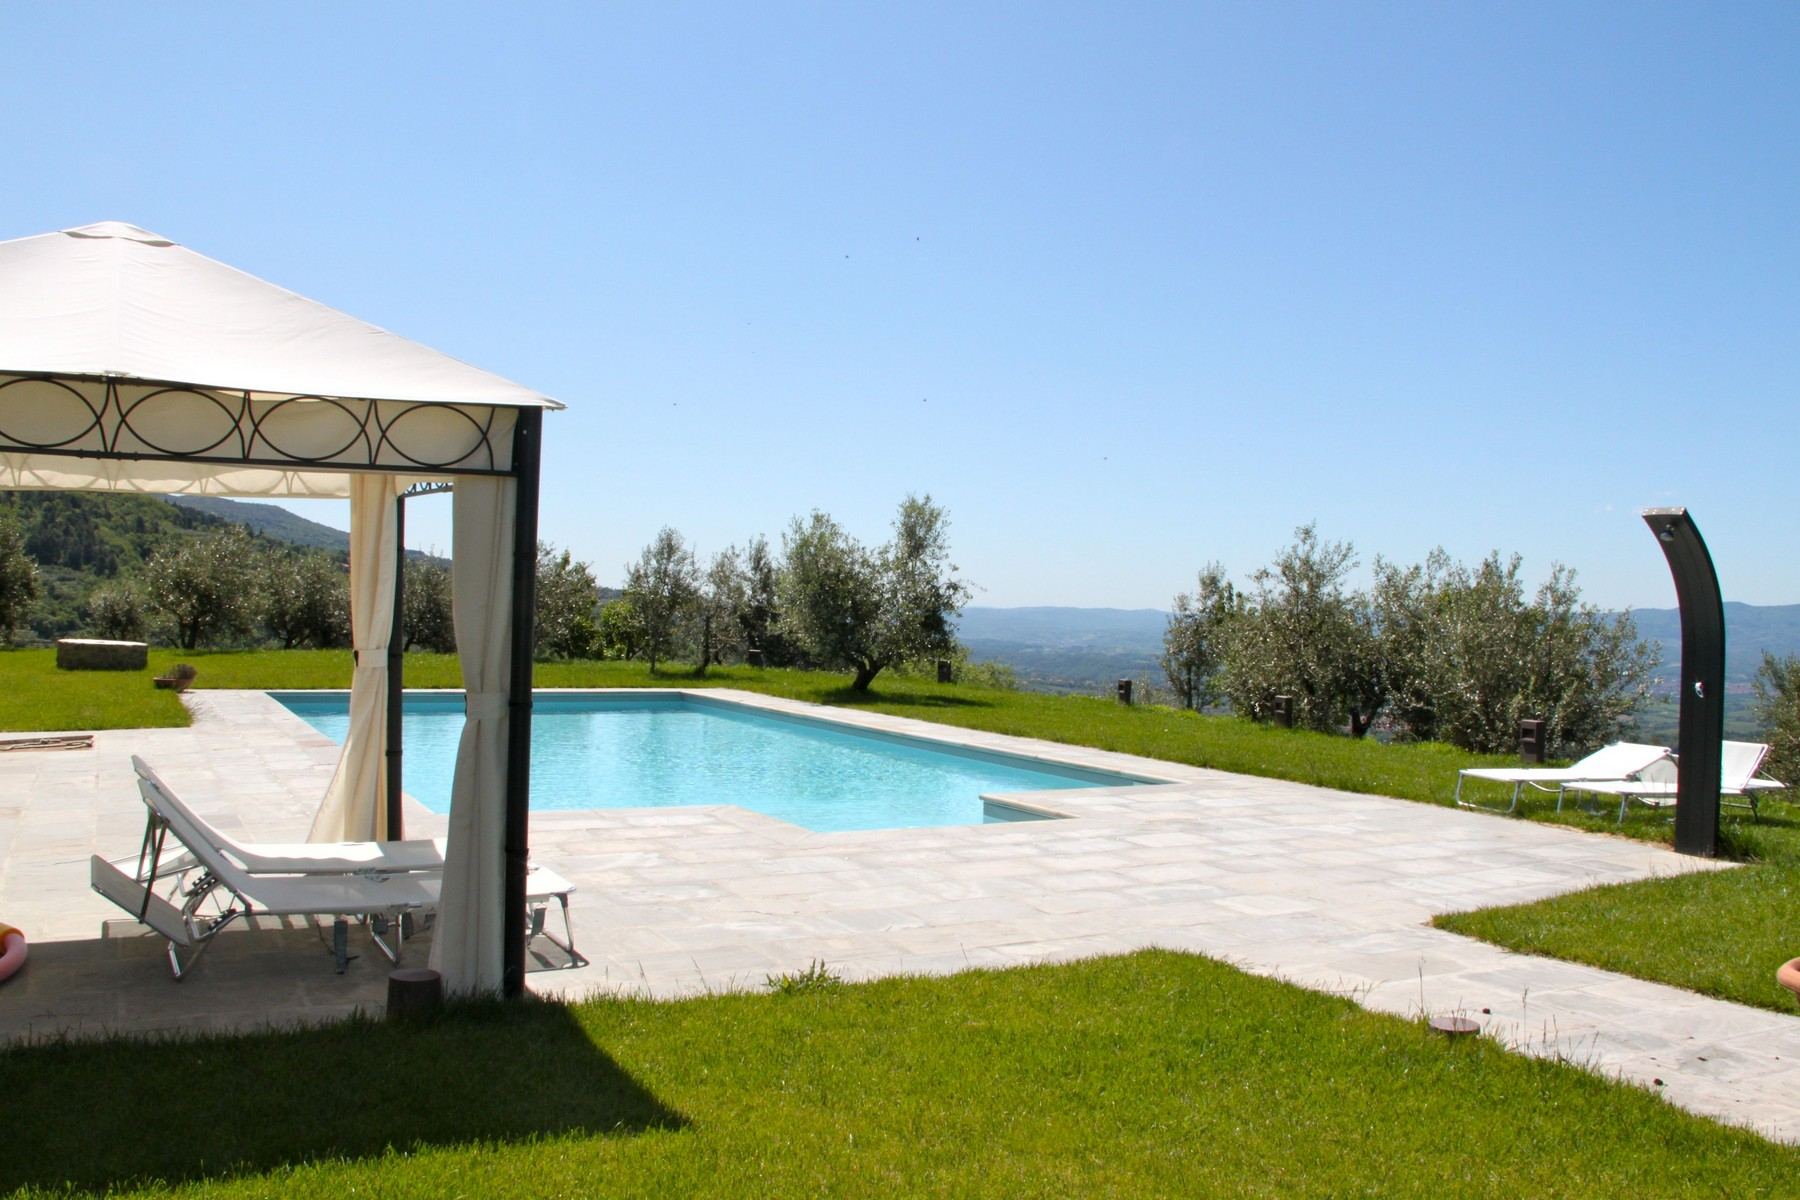 Additional photo for property listing at Design villa in the Tuscan countryside Pian di Sco Arezzo, Arezzo 52026 Italie